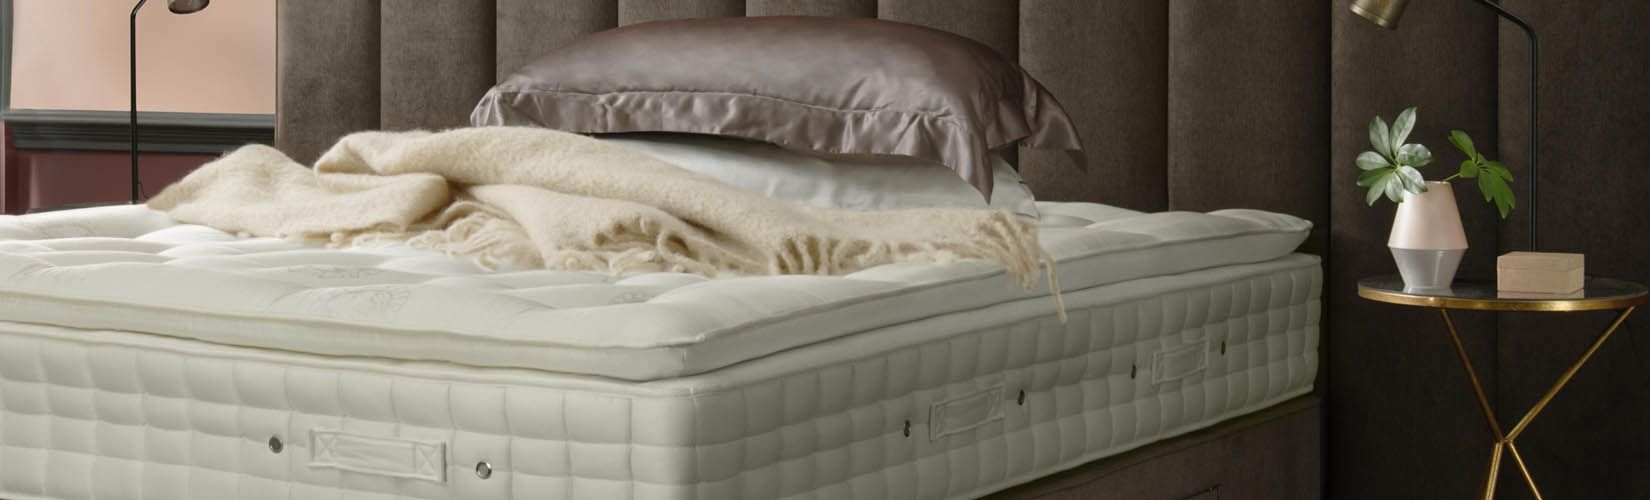 Mattress Care Guide: How to Look After Your New Mattress